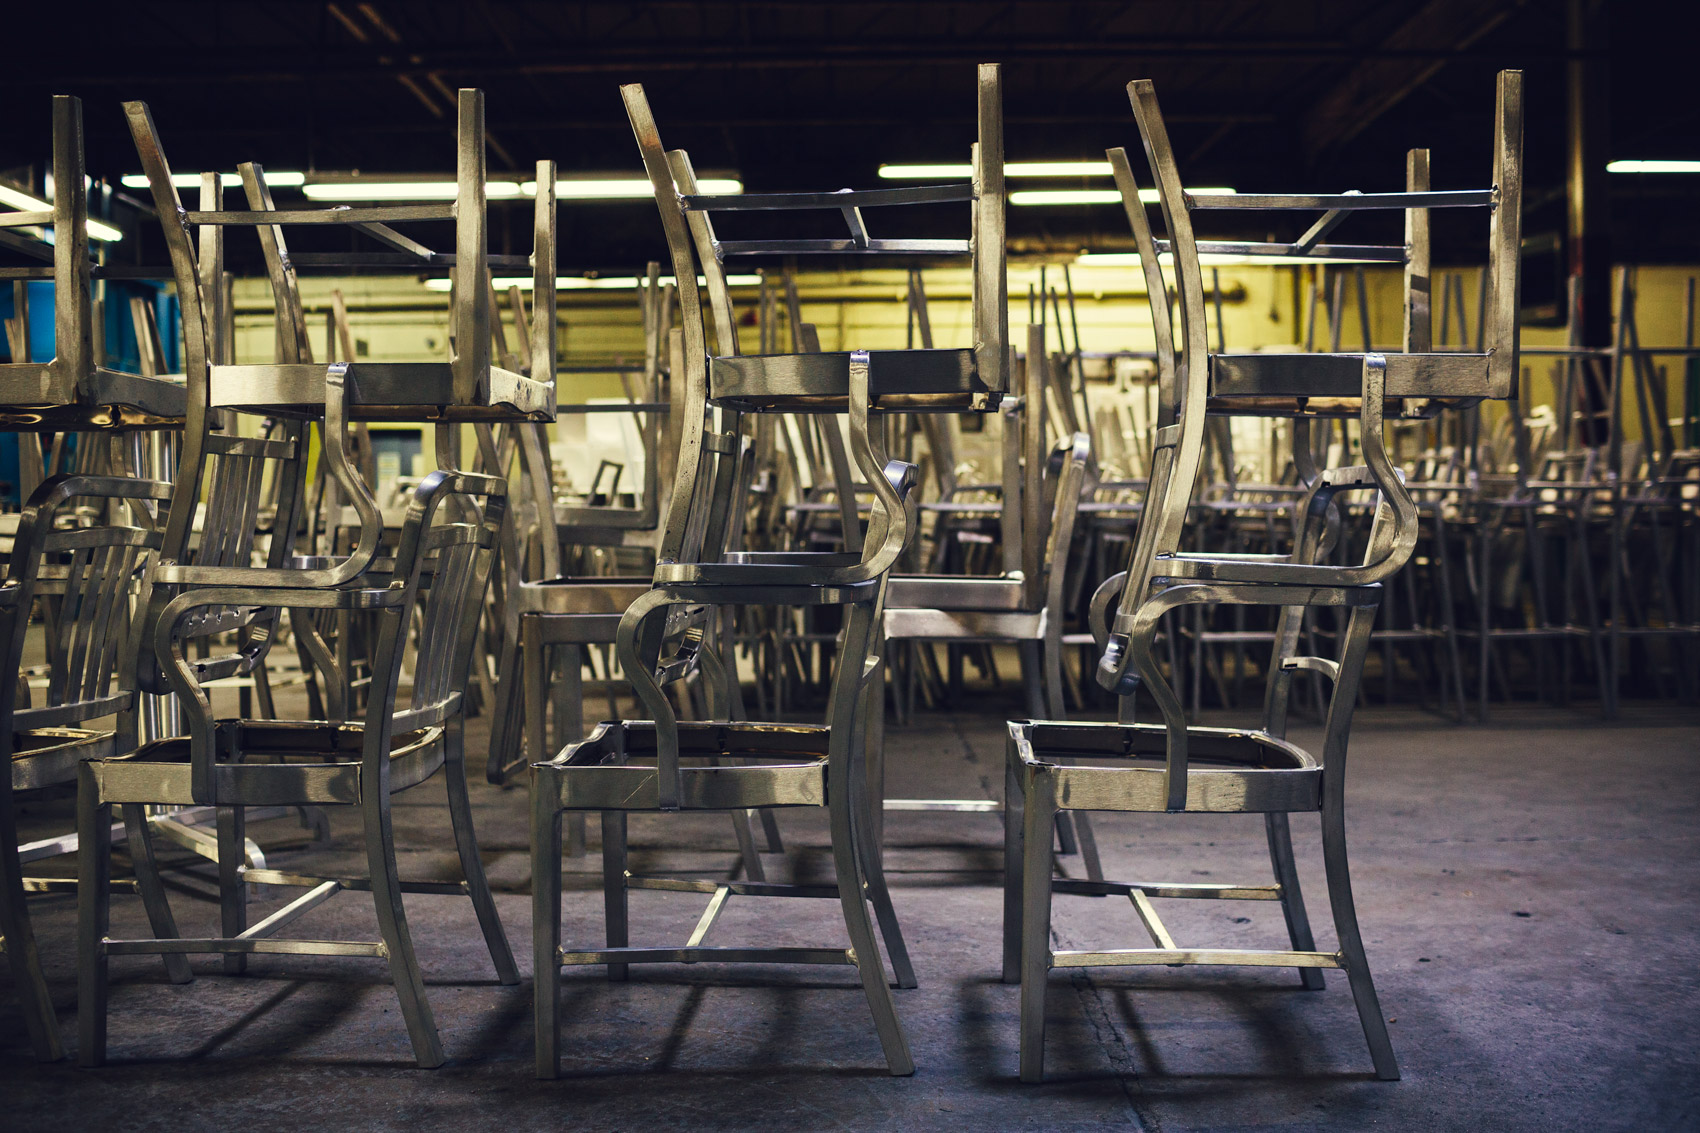 1006 navy chair factory stacked in factory for washington dc industrial photographer